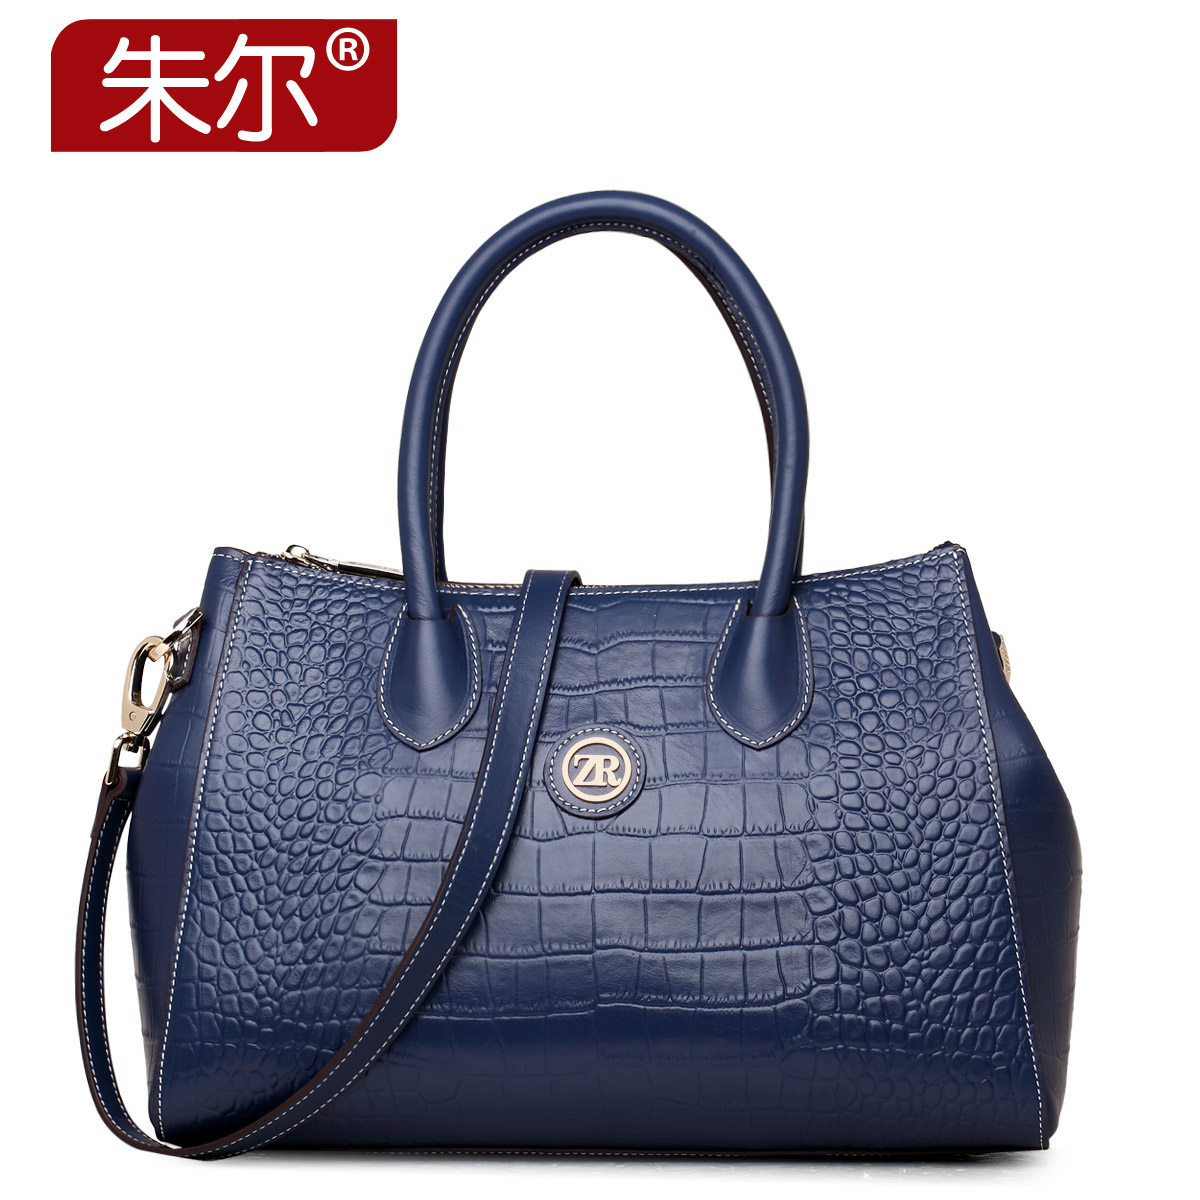 2015 autumn and winter women's cowhide handbag fashion women's bags for Crocodile female handbag